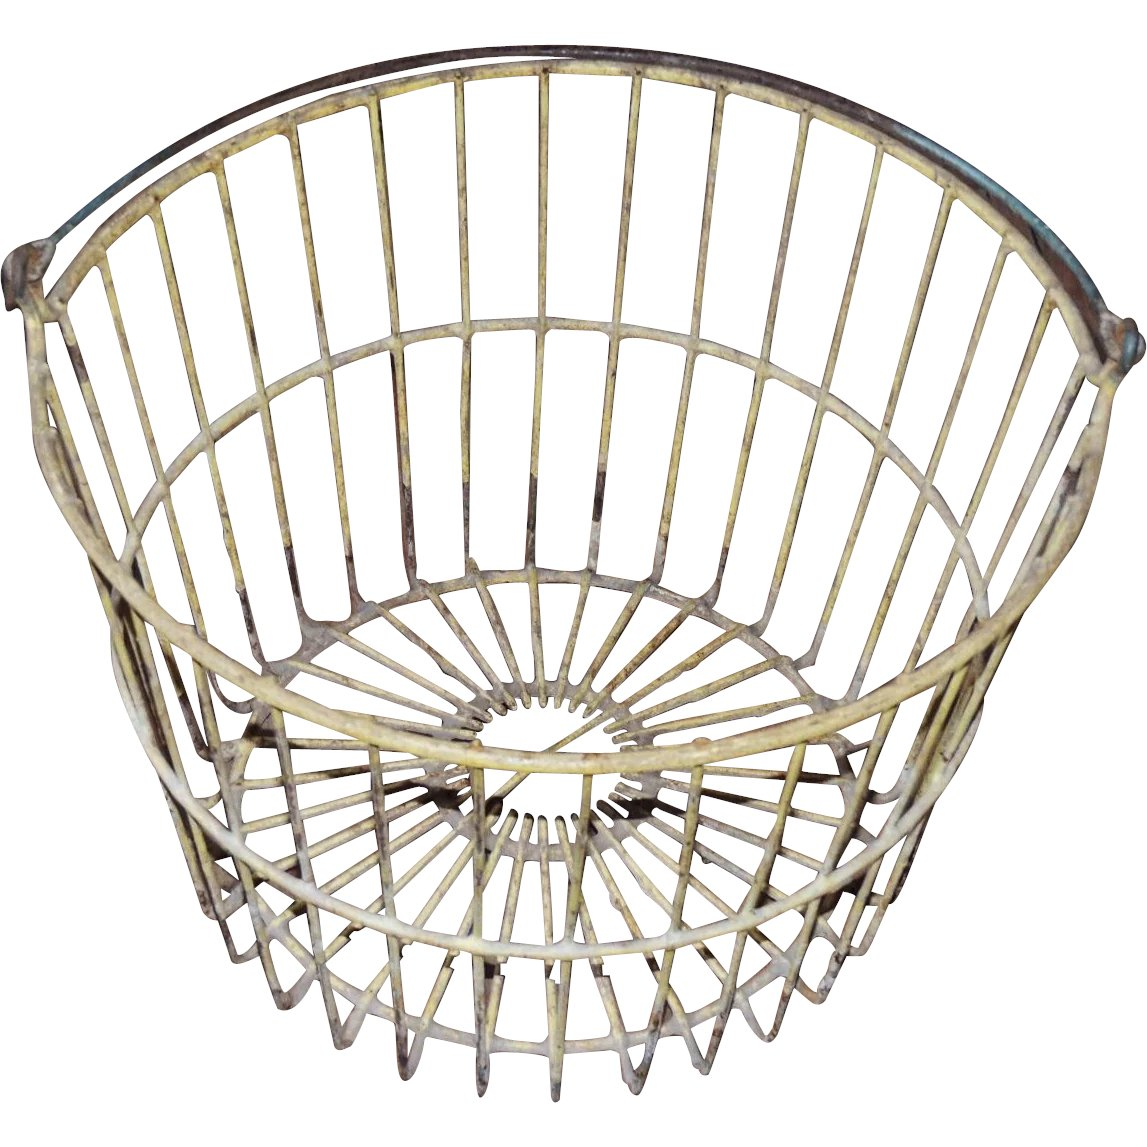 Early Primitive Wire Egg Basket with Bale Handle : Conjunktion ...